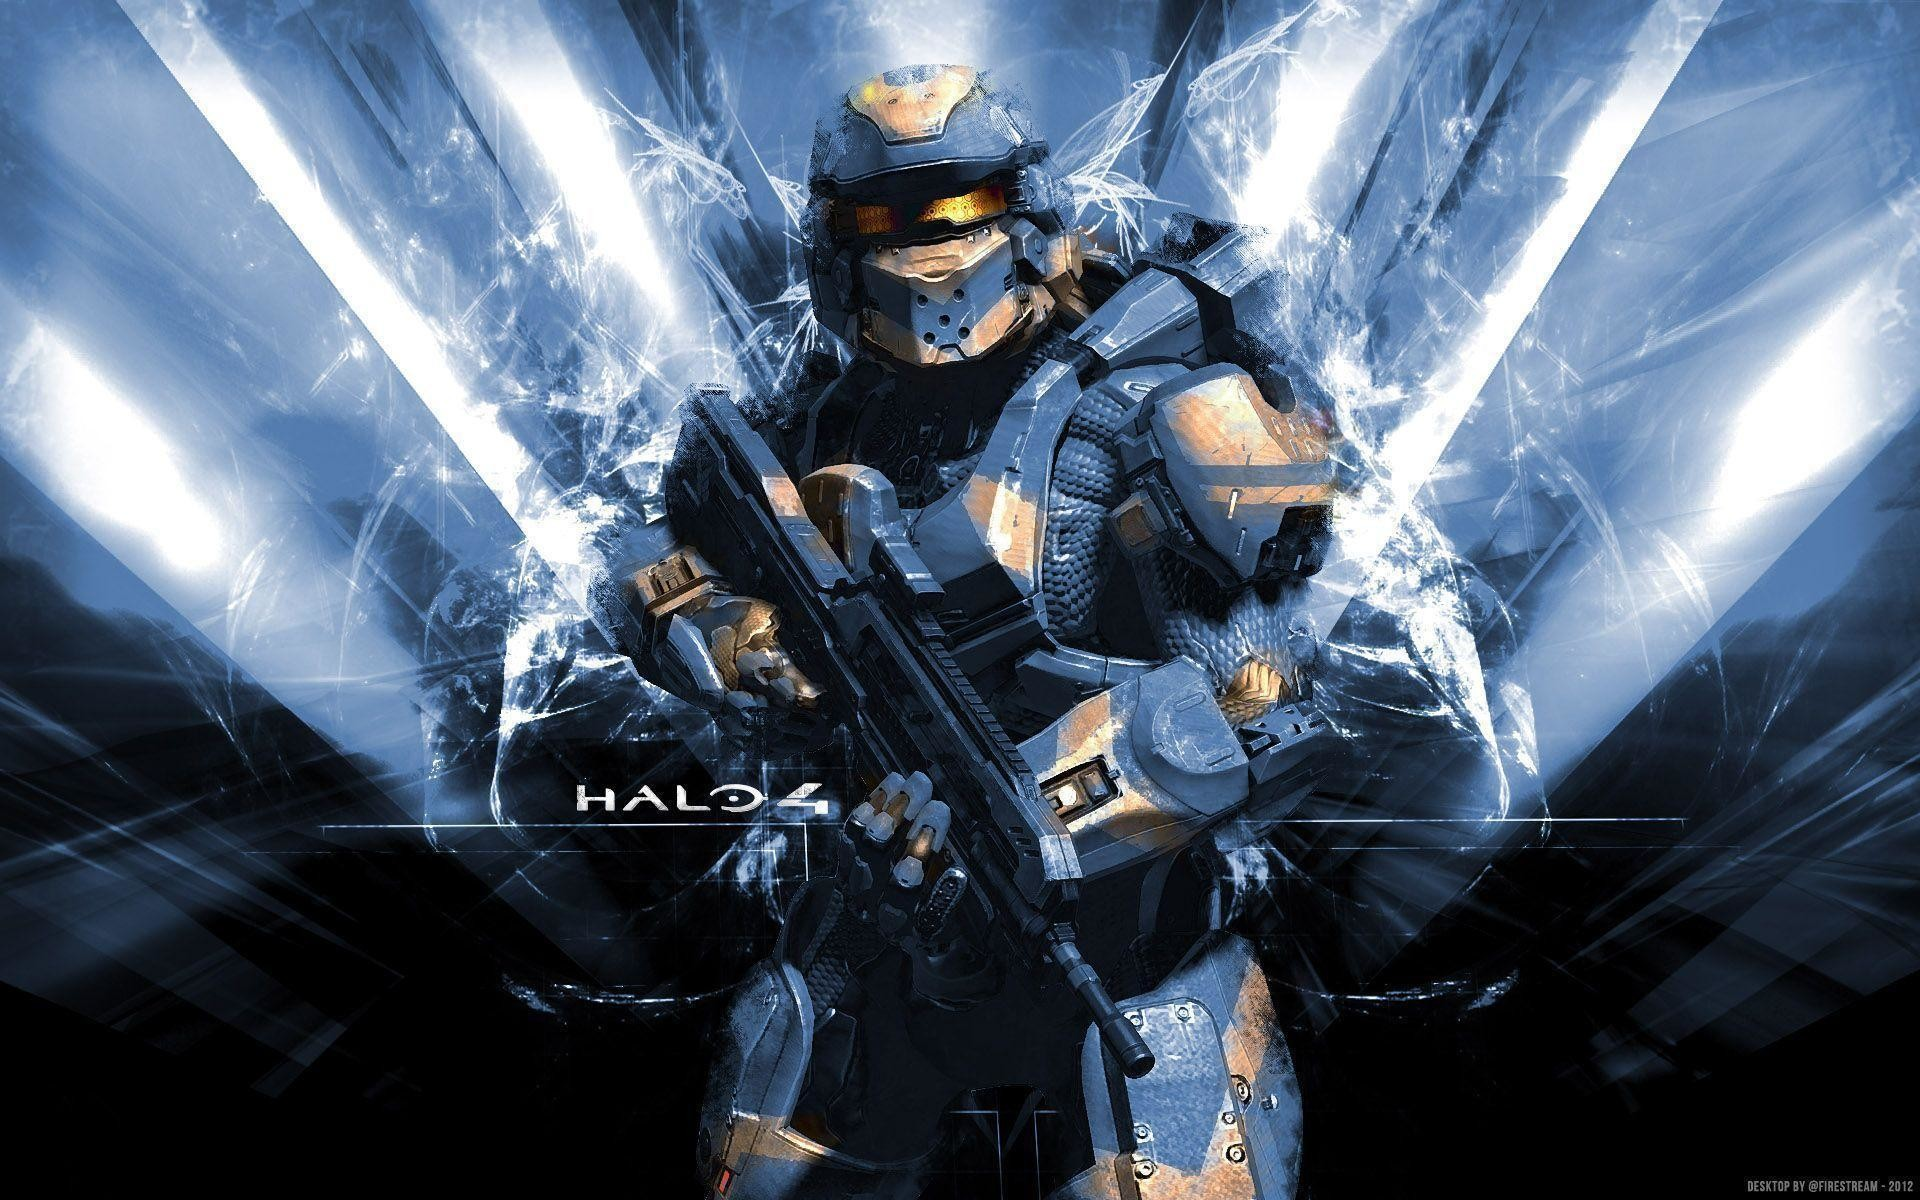 Halo 4 Elite Wallpaper 76 images 1920x1200